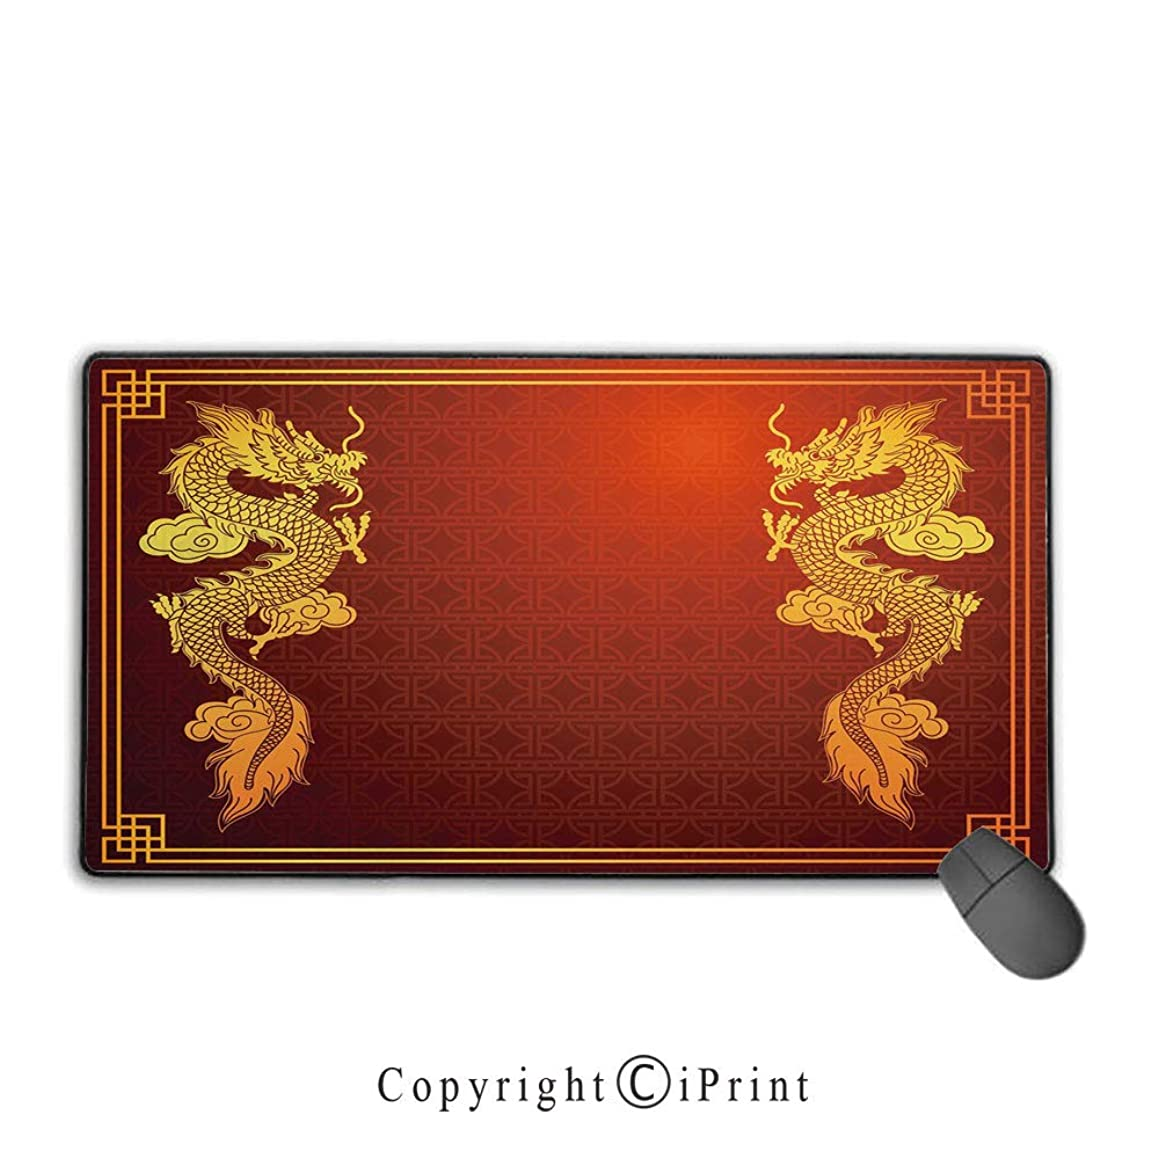 Extended Mousepad with Durable Stitched Edges,Dragon,Chinese Heritage Historical Asian Eastern Motif with Legendary Creature Design Decorative,Orange Yellow,Suitable for laptops, computers, PCs, keybo